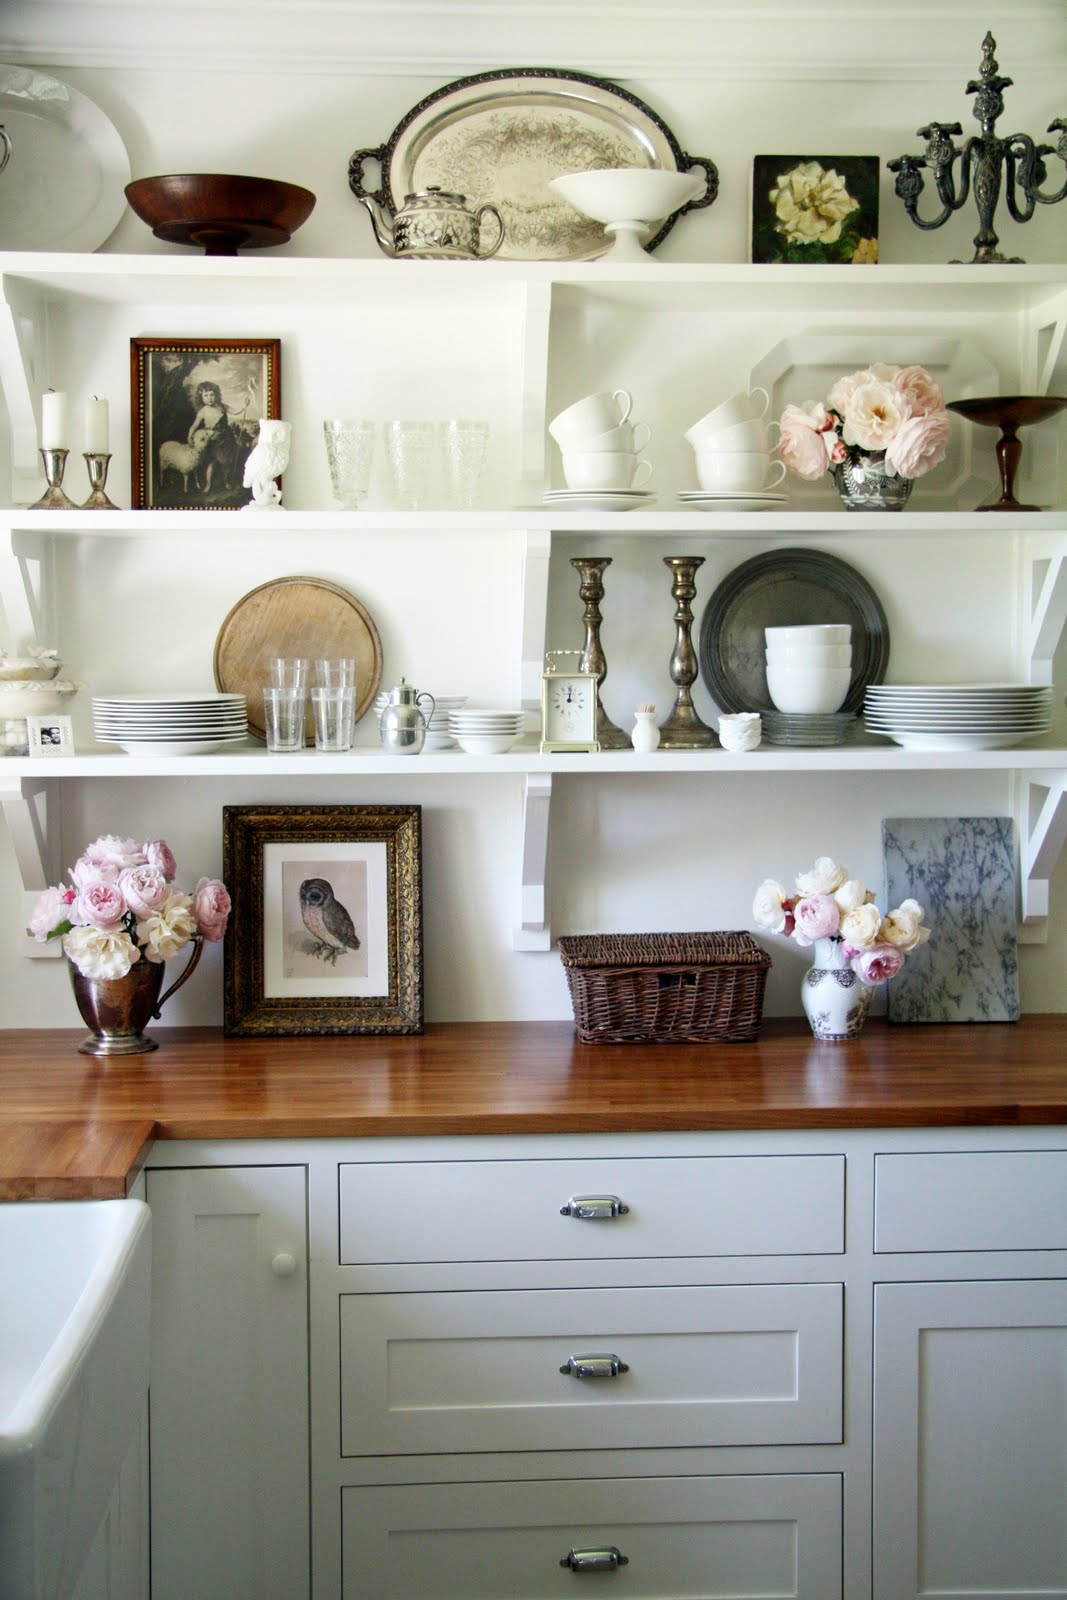 The Benefits Of Open Shelving In The Kitchen: Gorgeous Open Shelving In The Kitchen!